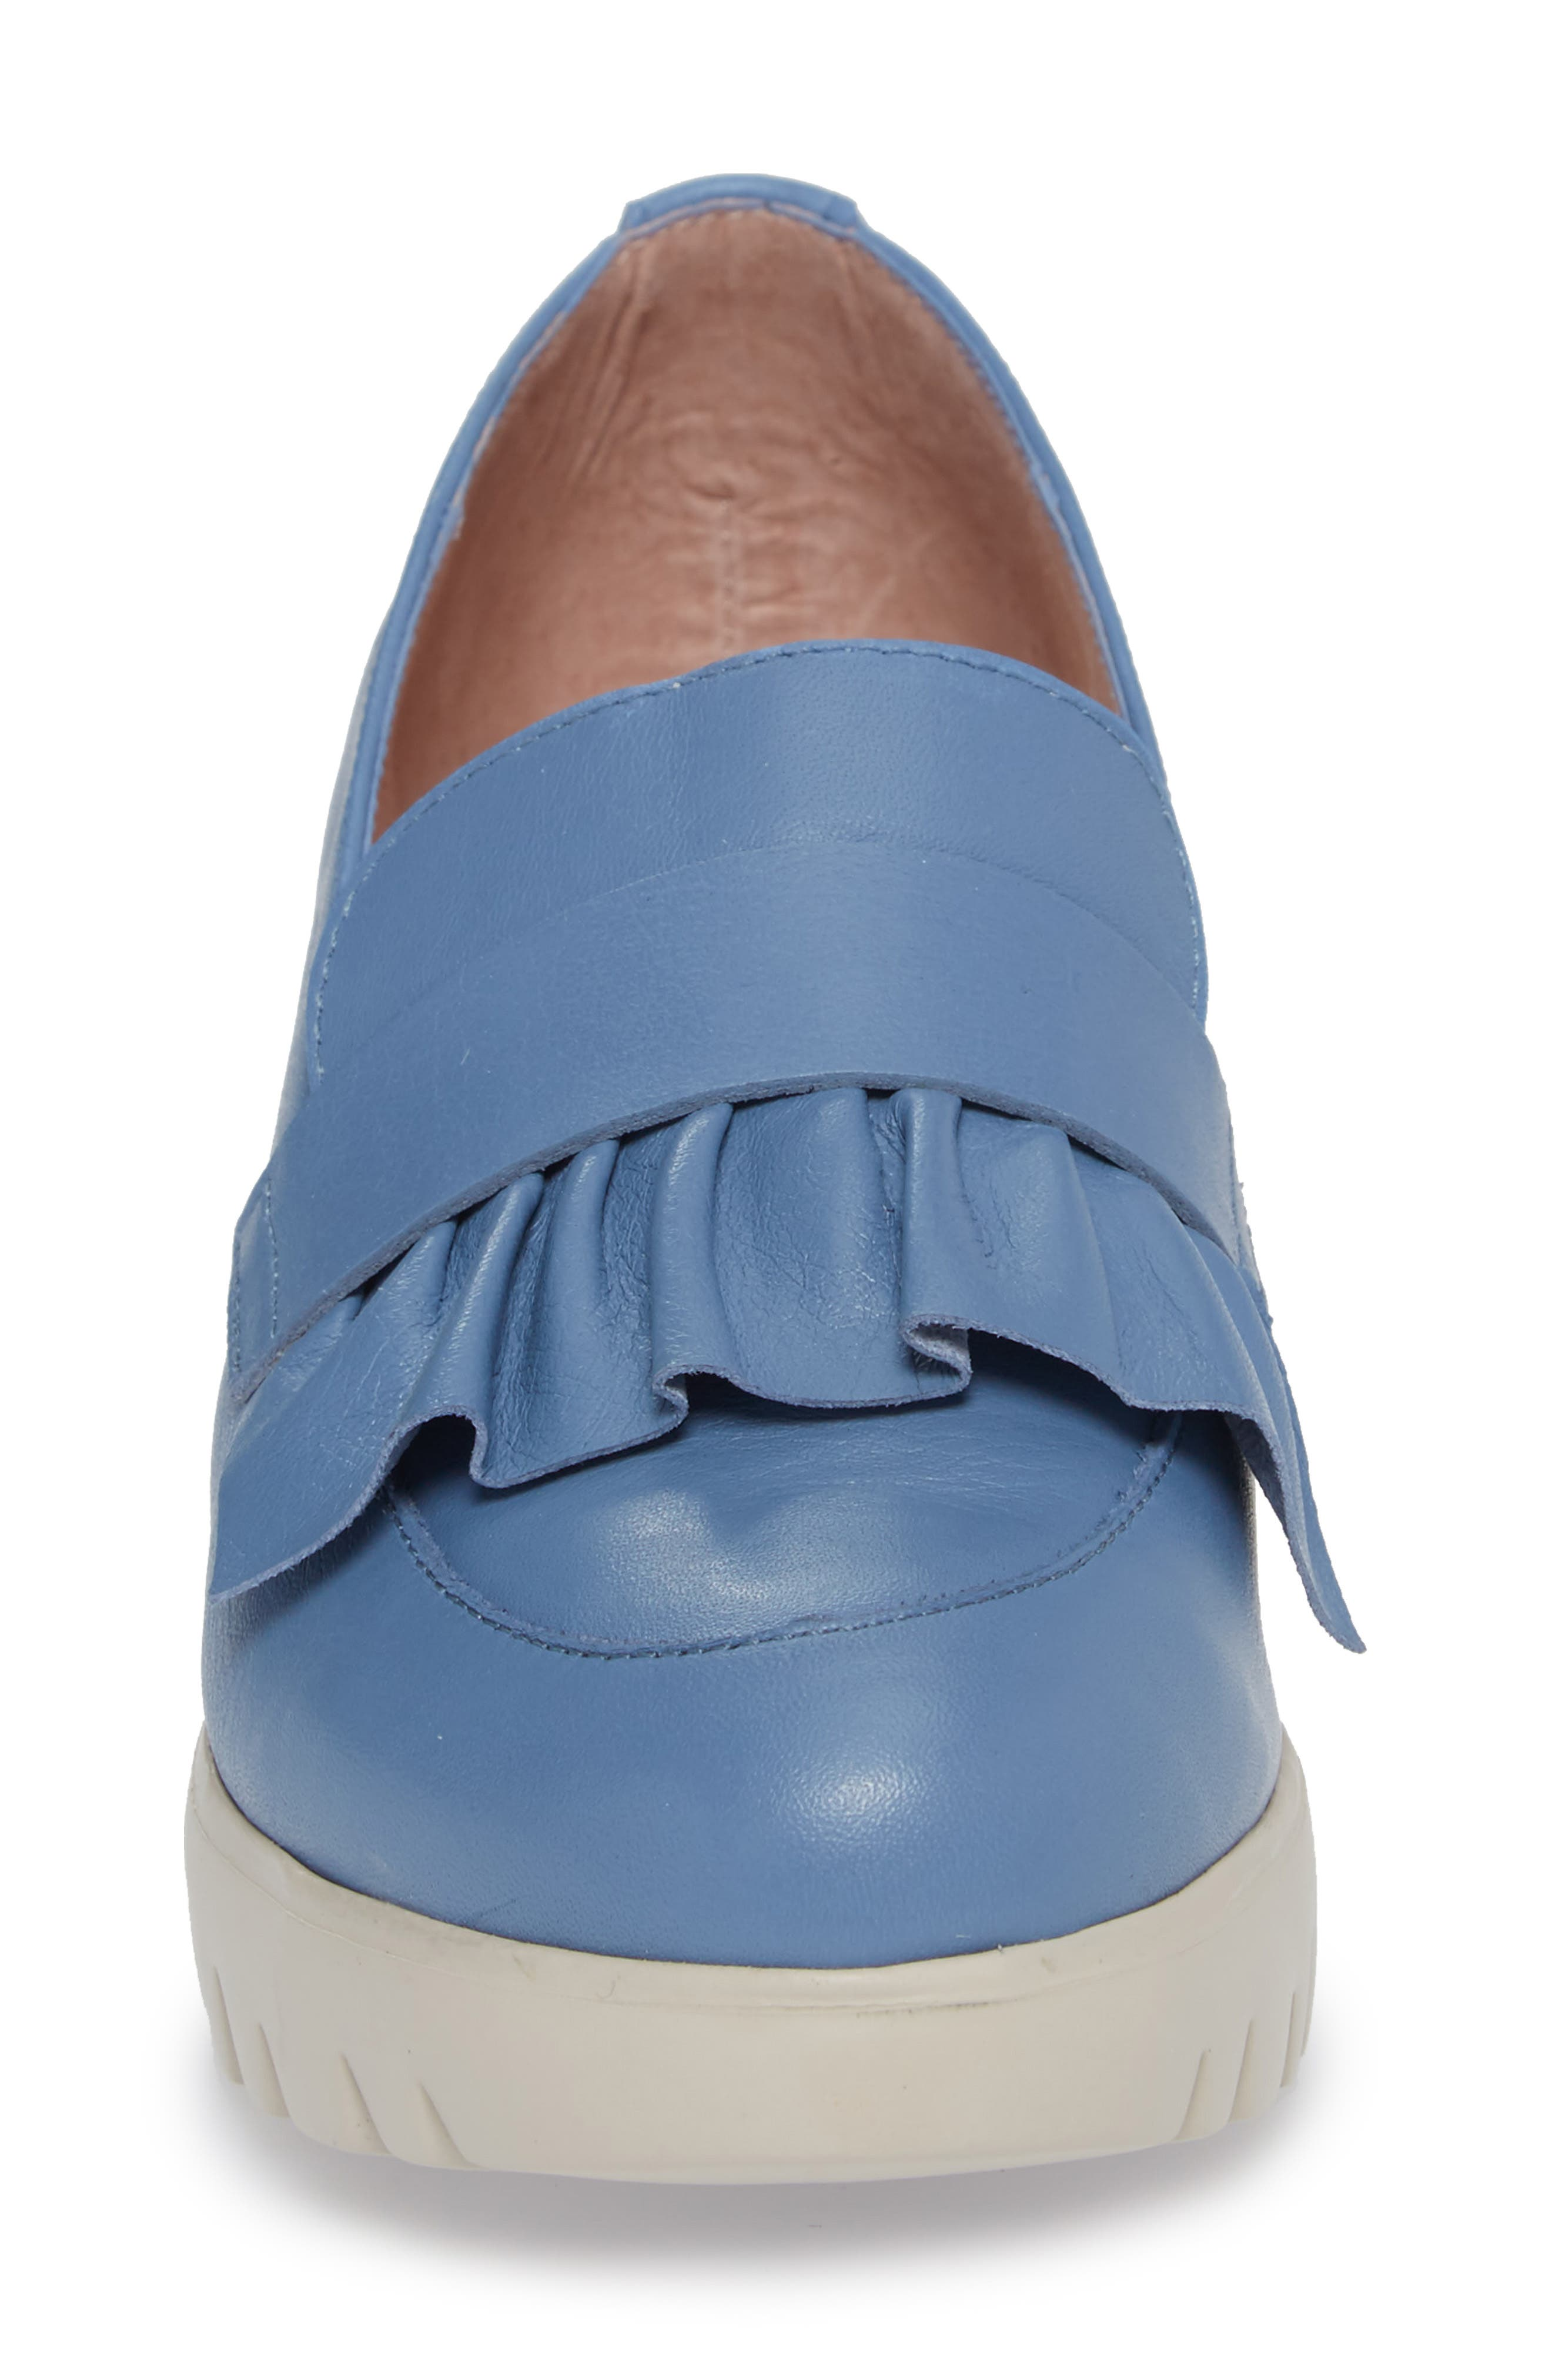 Loafer Wedge,                             Alternate thumbnail 4, color,                             Jeans Leather